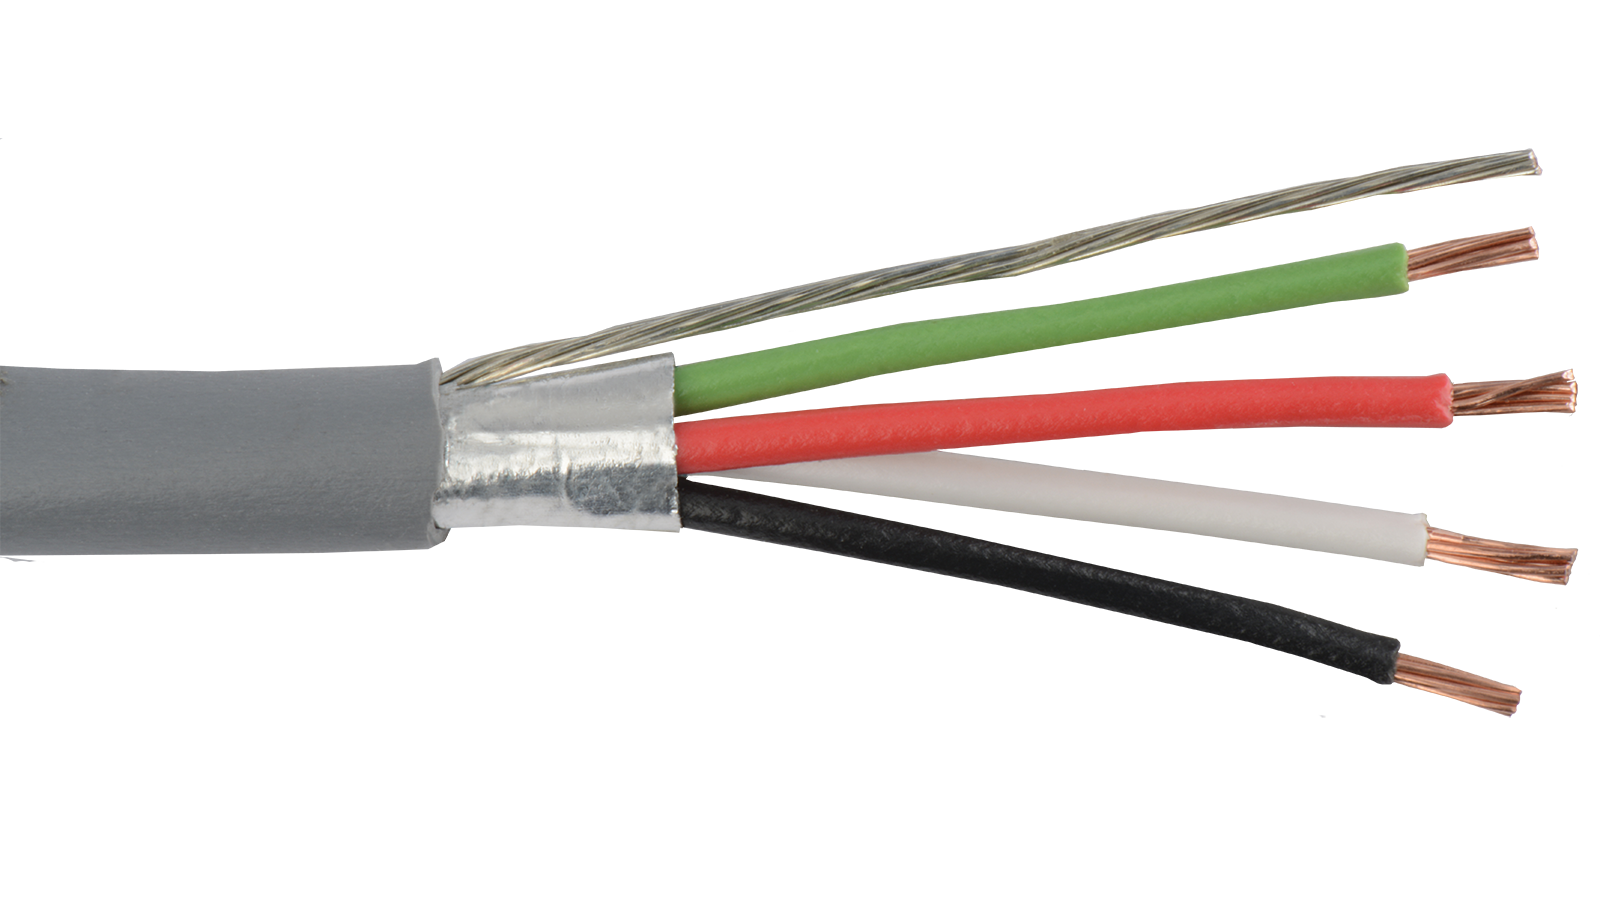 18-4C-SH-GRY - Commercial grade general purpose 18 AWG 4 conductor ...